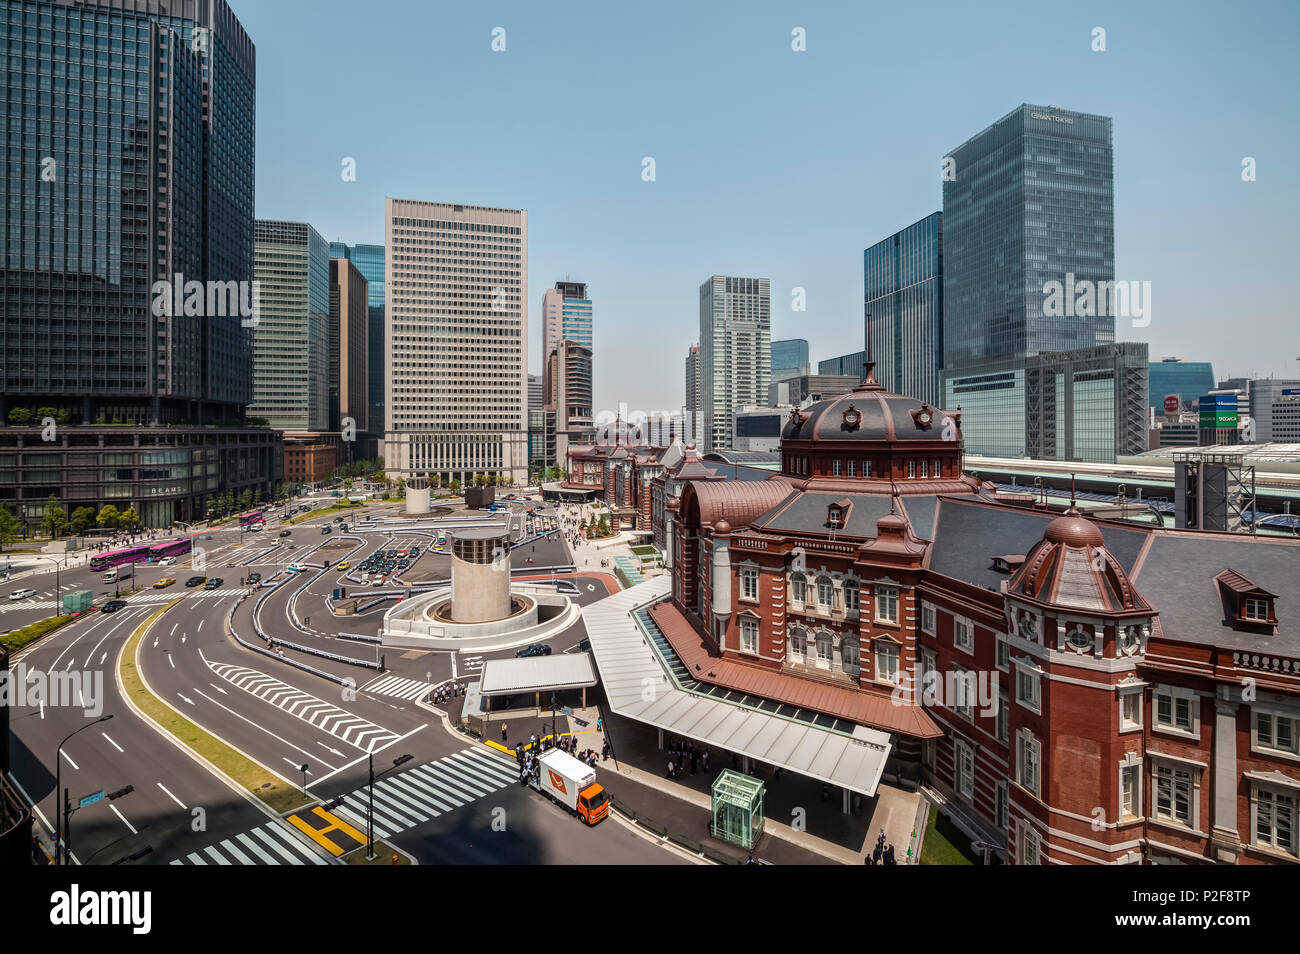 Tokyo Station with skyscrapers in background and blue sky seen from JP Tower, Chiyoda-ku, Tokyo, Japan - Stock Image